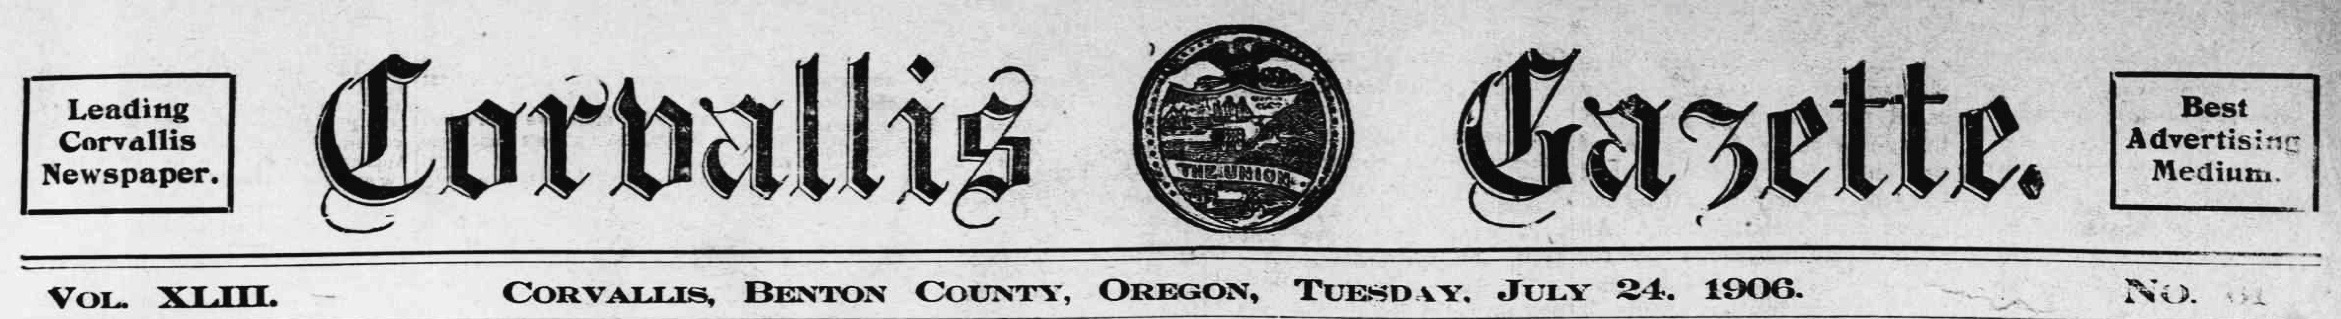 Corvallis gazette. (Corvallis, Benton County, Or.) July 24, 1906, Image 1. http://oregonnews.uoregon.edu/lccn/sn93051660/1906-07-24/ed-1/seq-1/